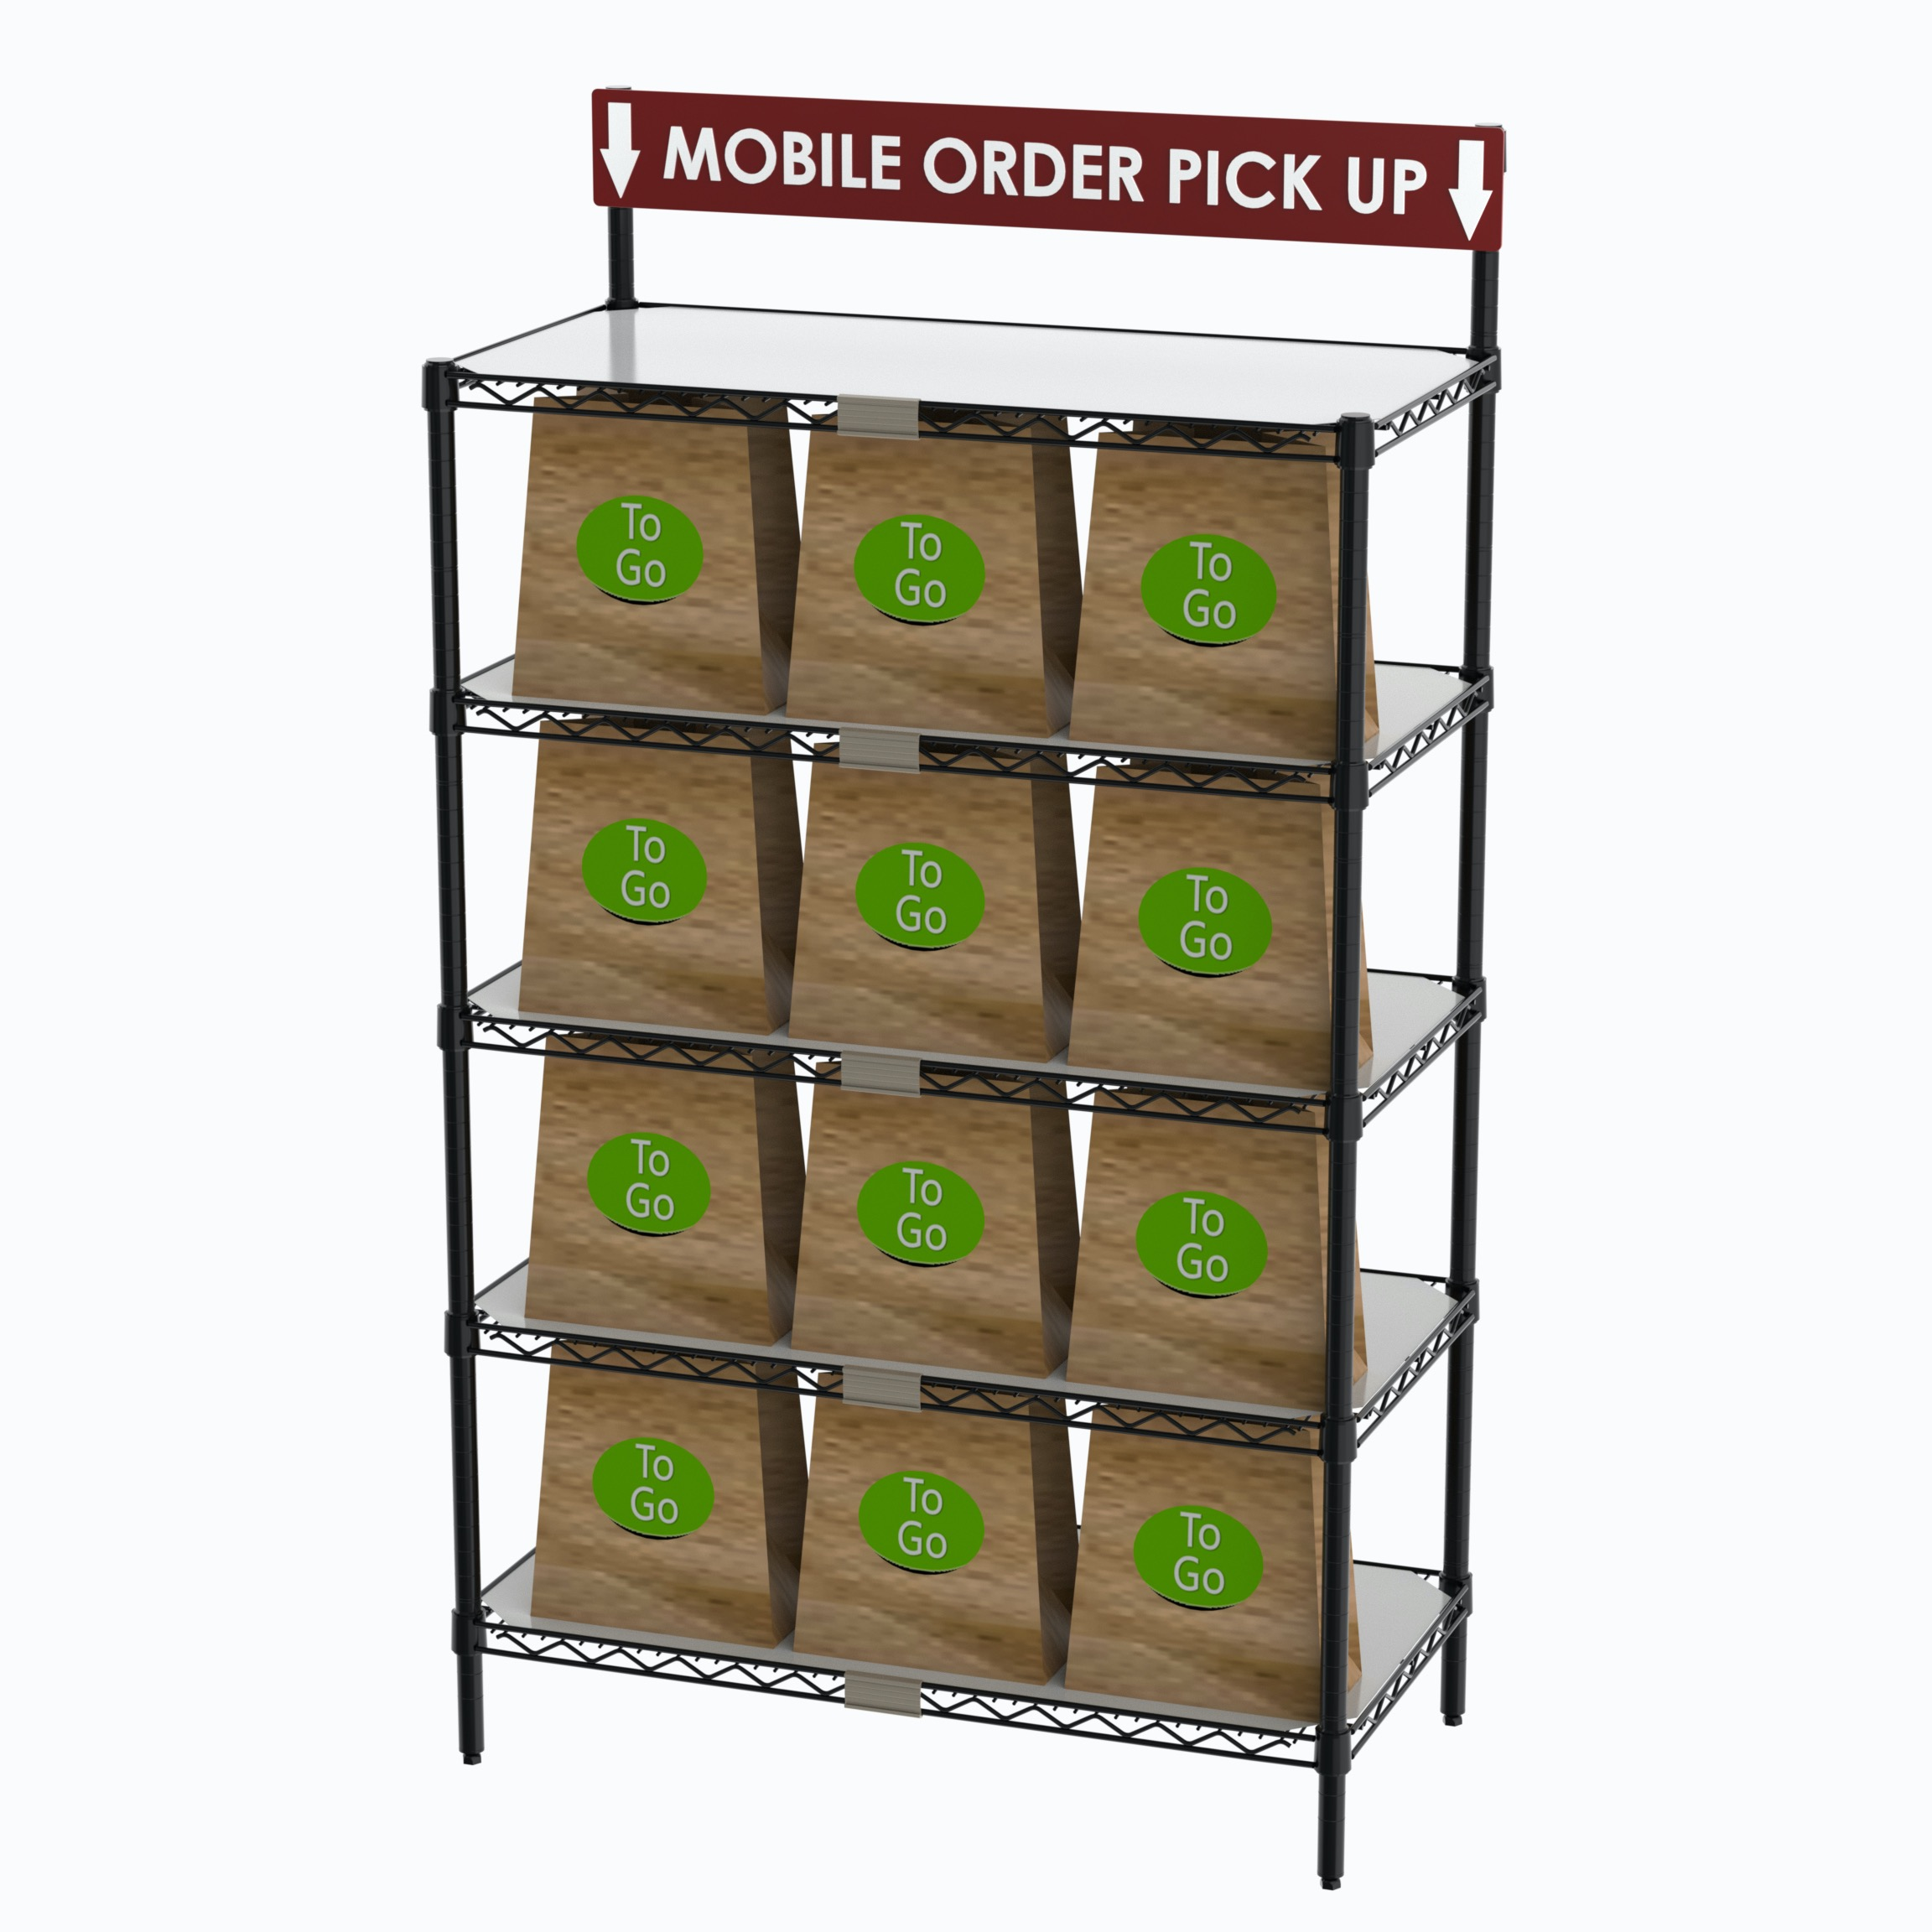 STATION TO-GO ORDER PICK-UP WITH SIGN, 36''W X 18''D X 63''H, SHIPS IN ONE BOX